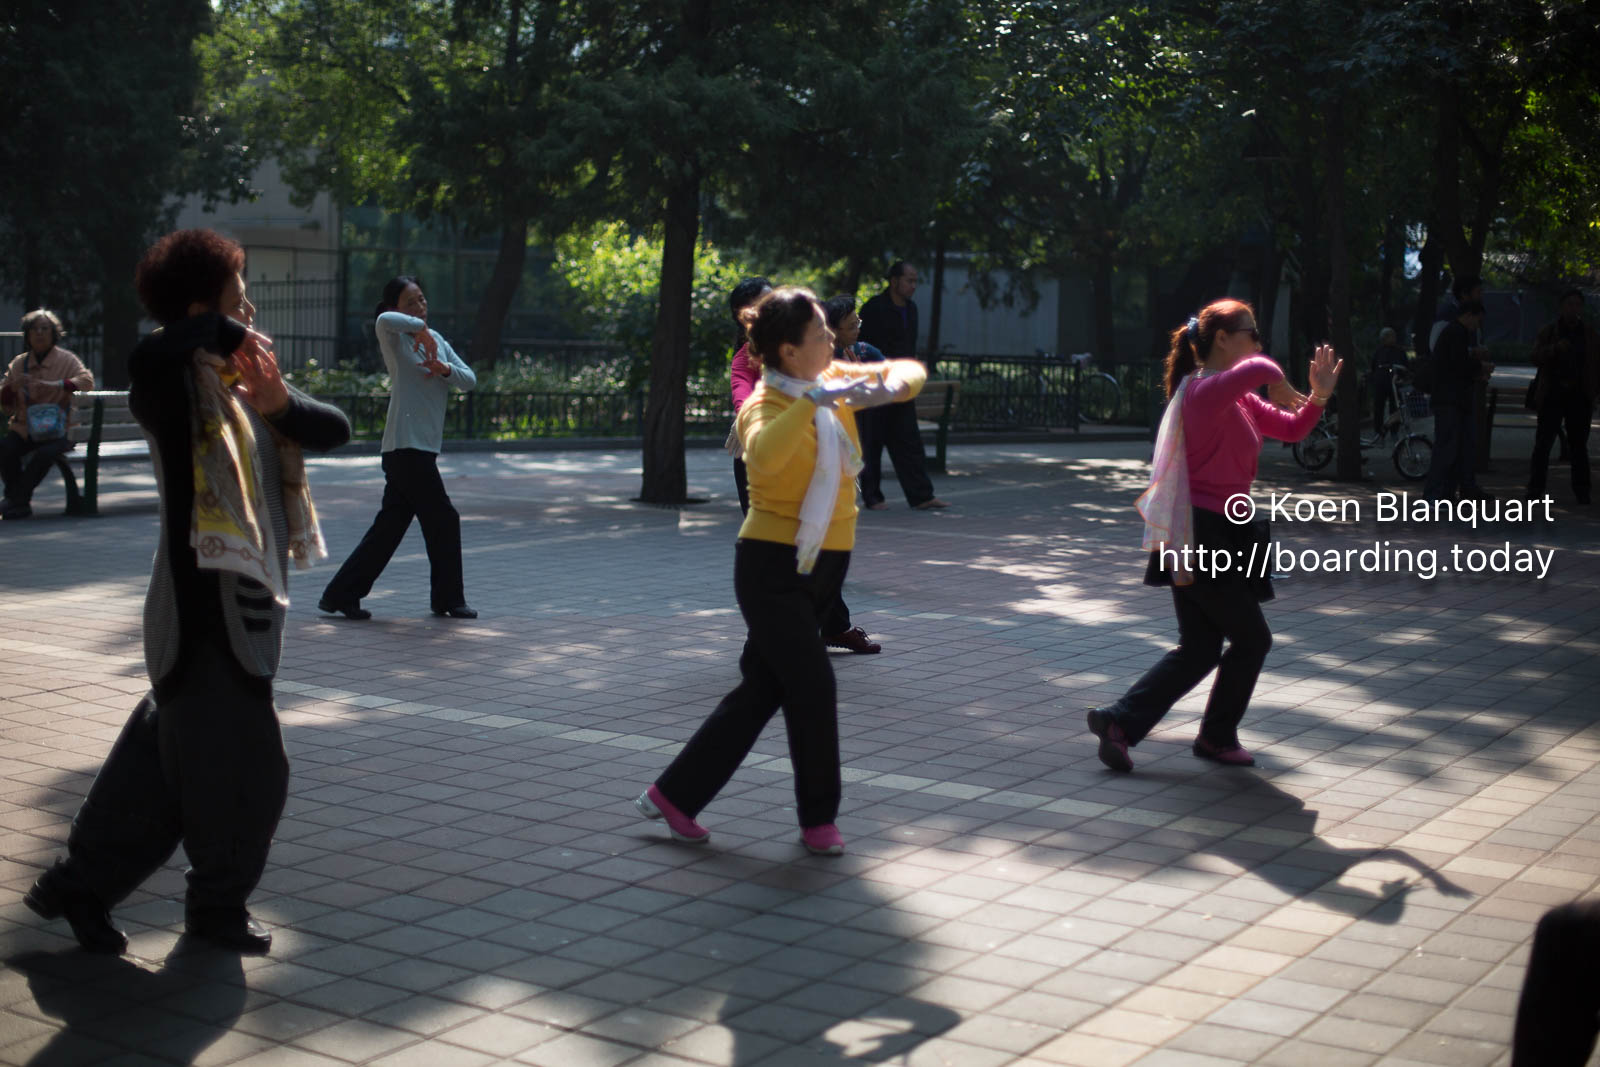 Chinese senior citizens learning a dance in the morning - Beijing